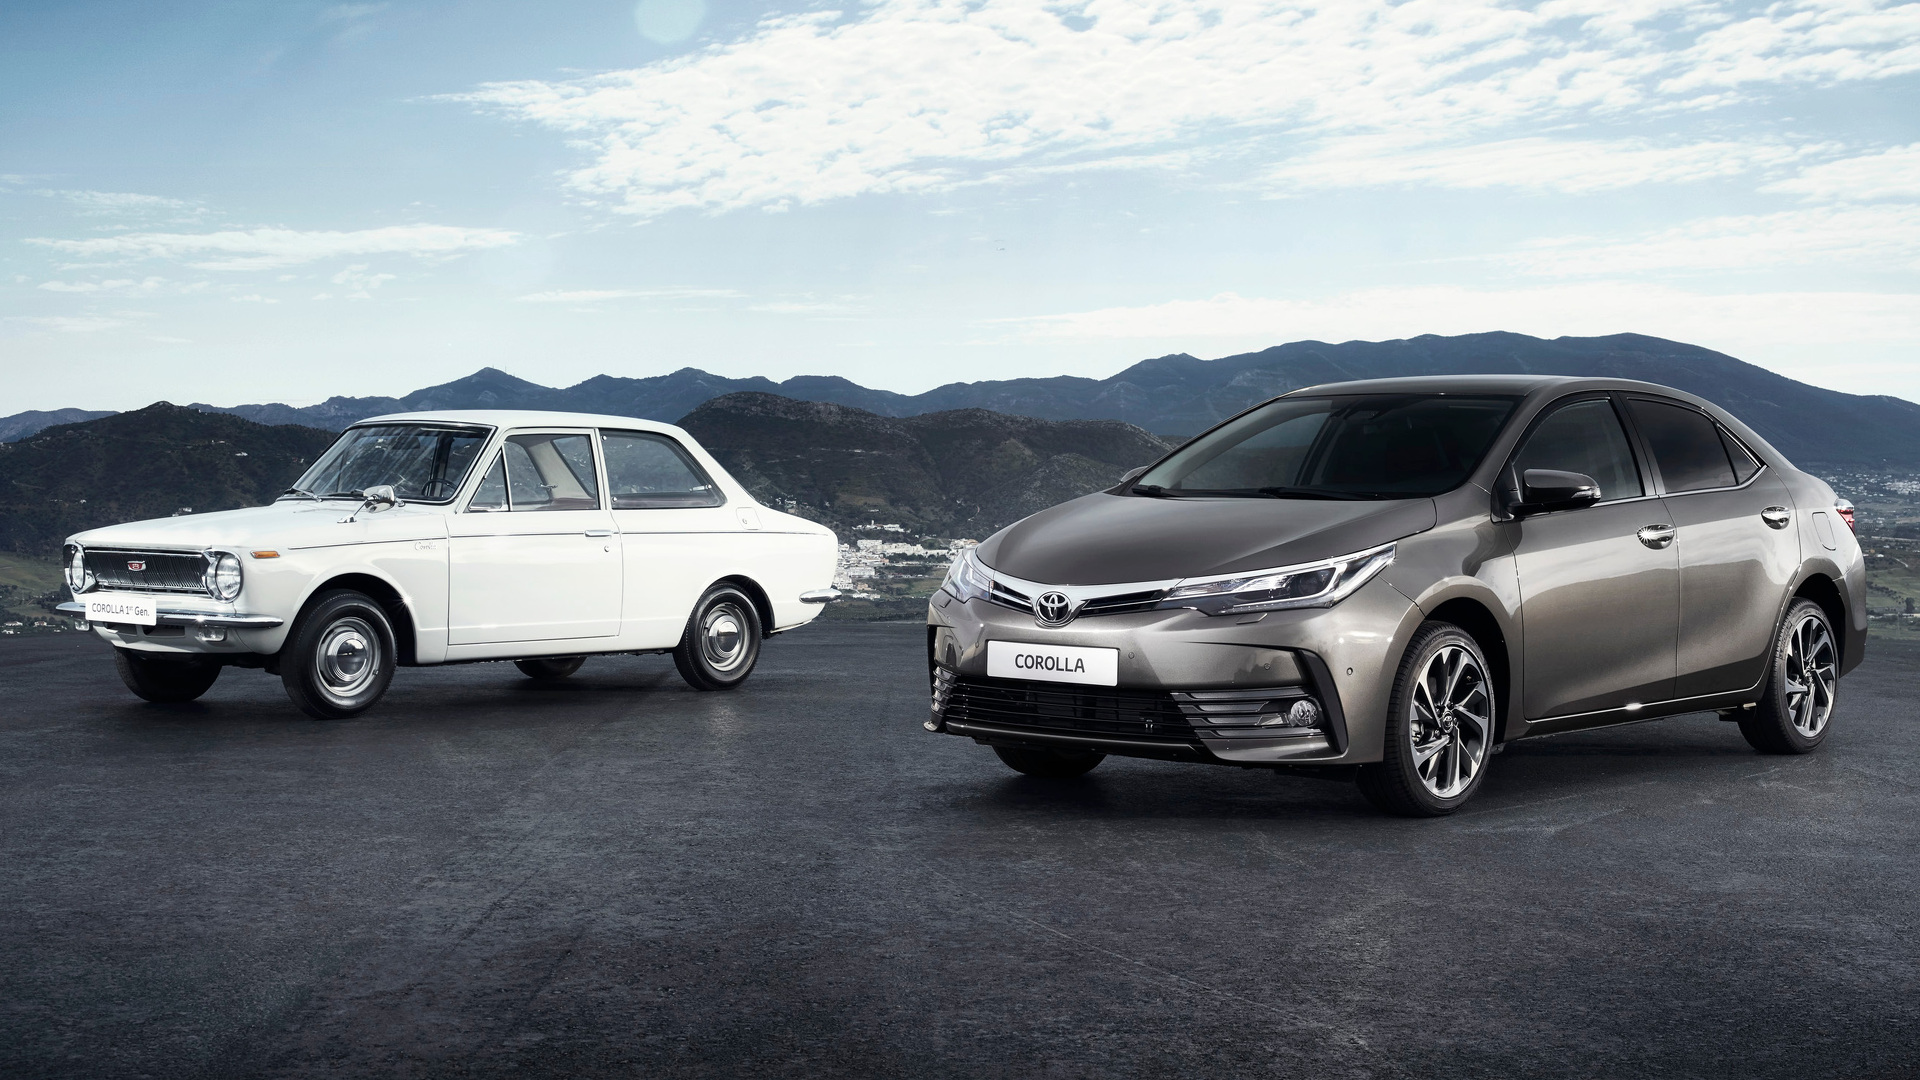 Toyota Corolla is the world\'s best selling car after 50 years